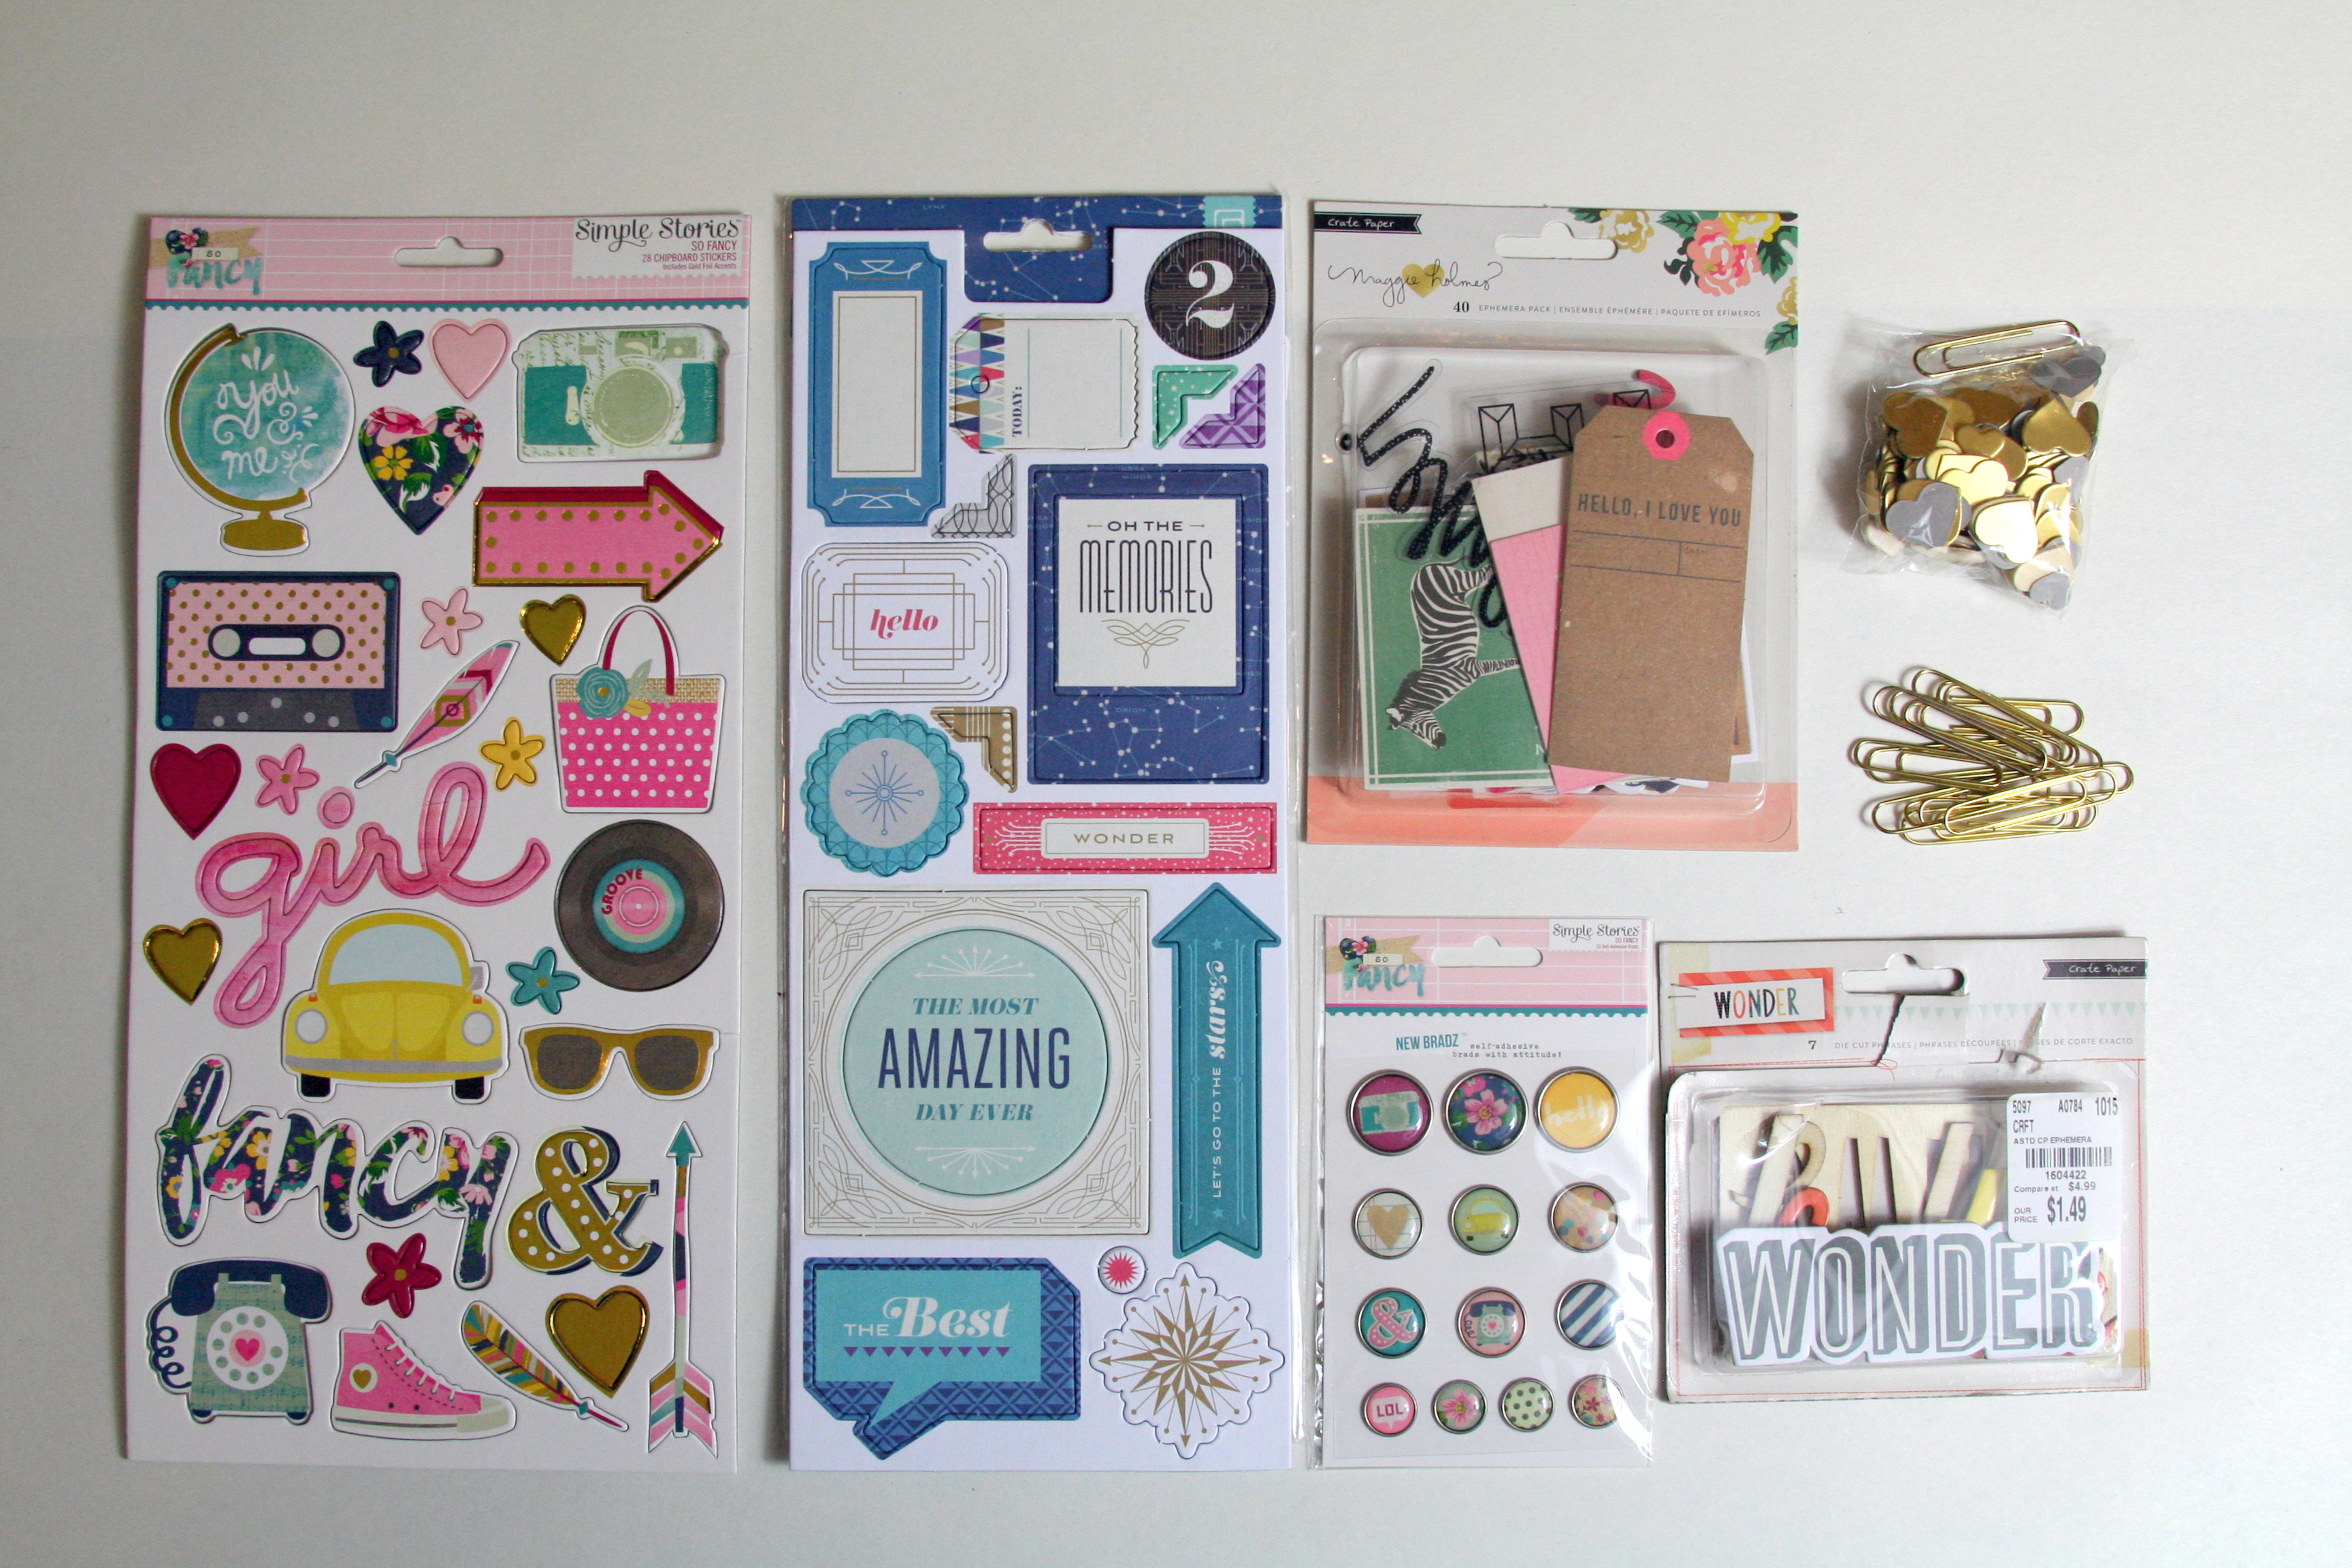 How to make scrapbook diy - I Made A Video Of My Clearing The Decks Scrapbook Process Which Includes A Review Of A Big Stack Of Layouts I Completed In 2015